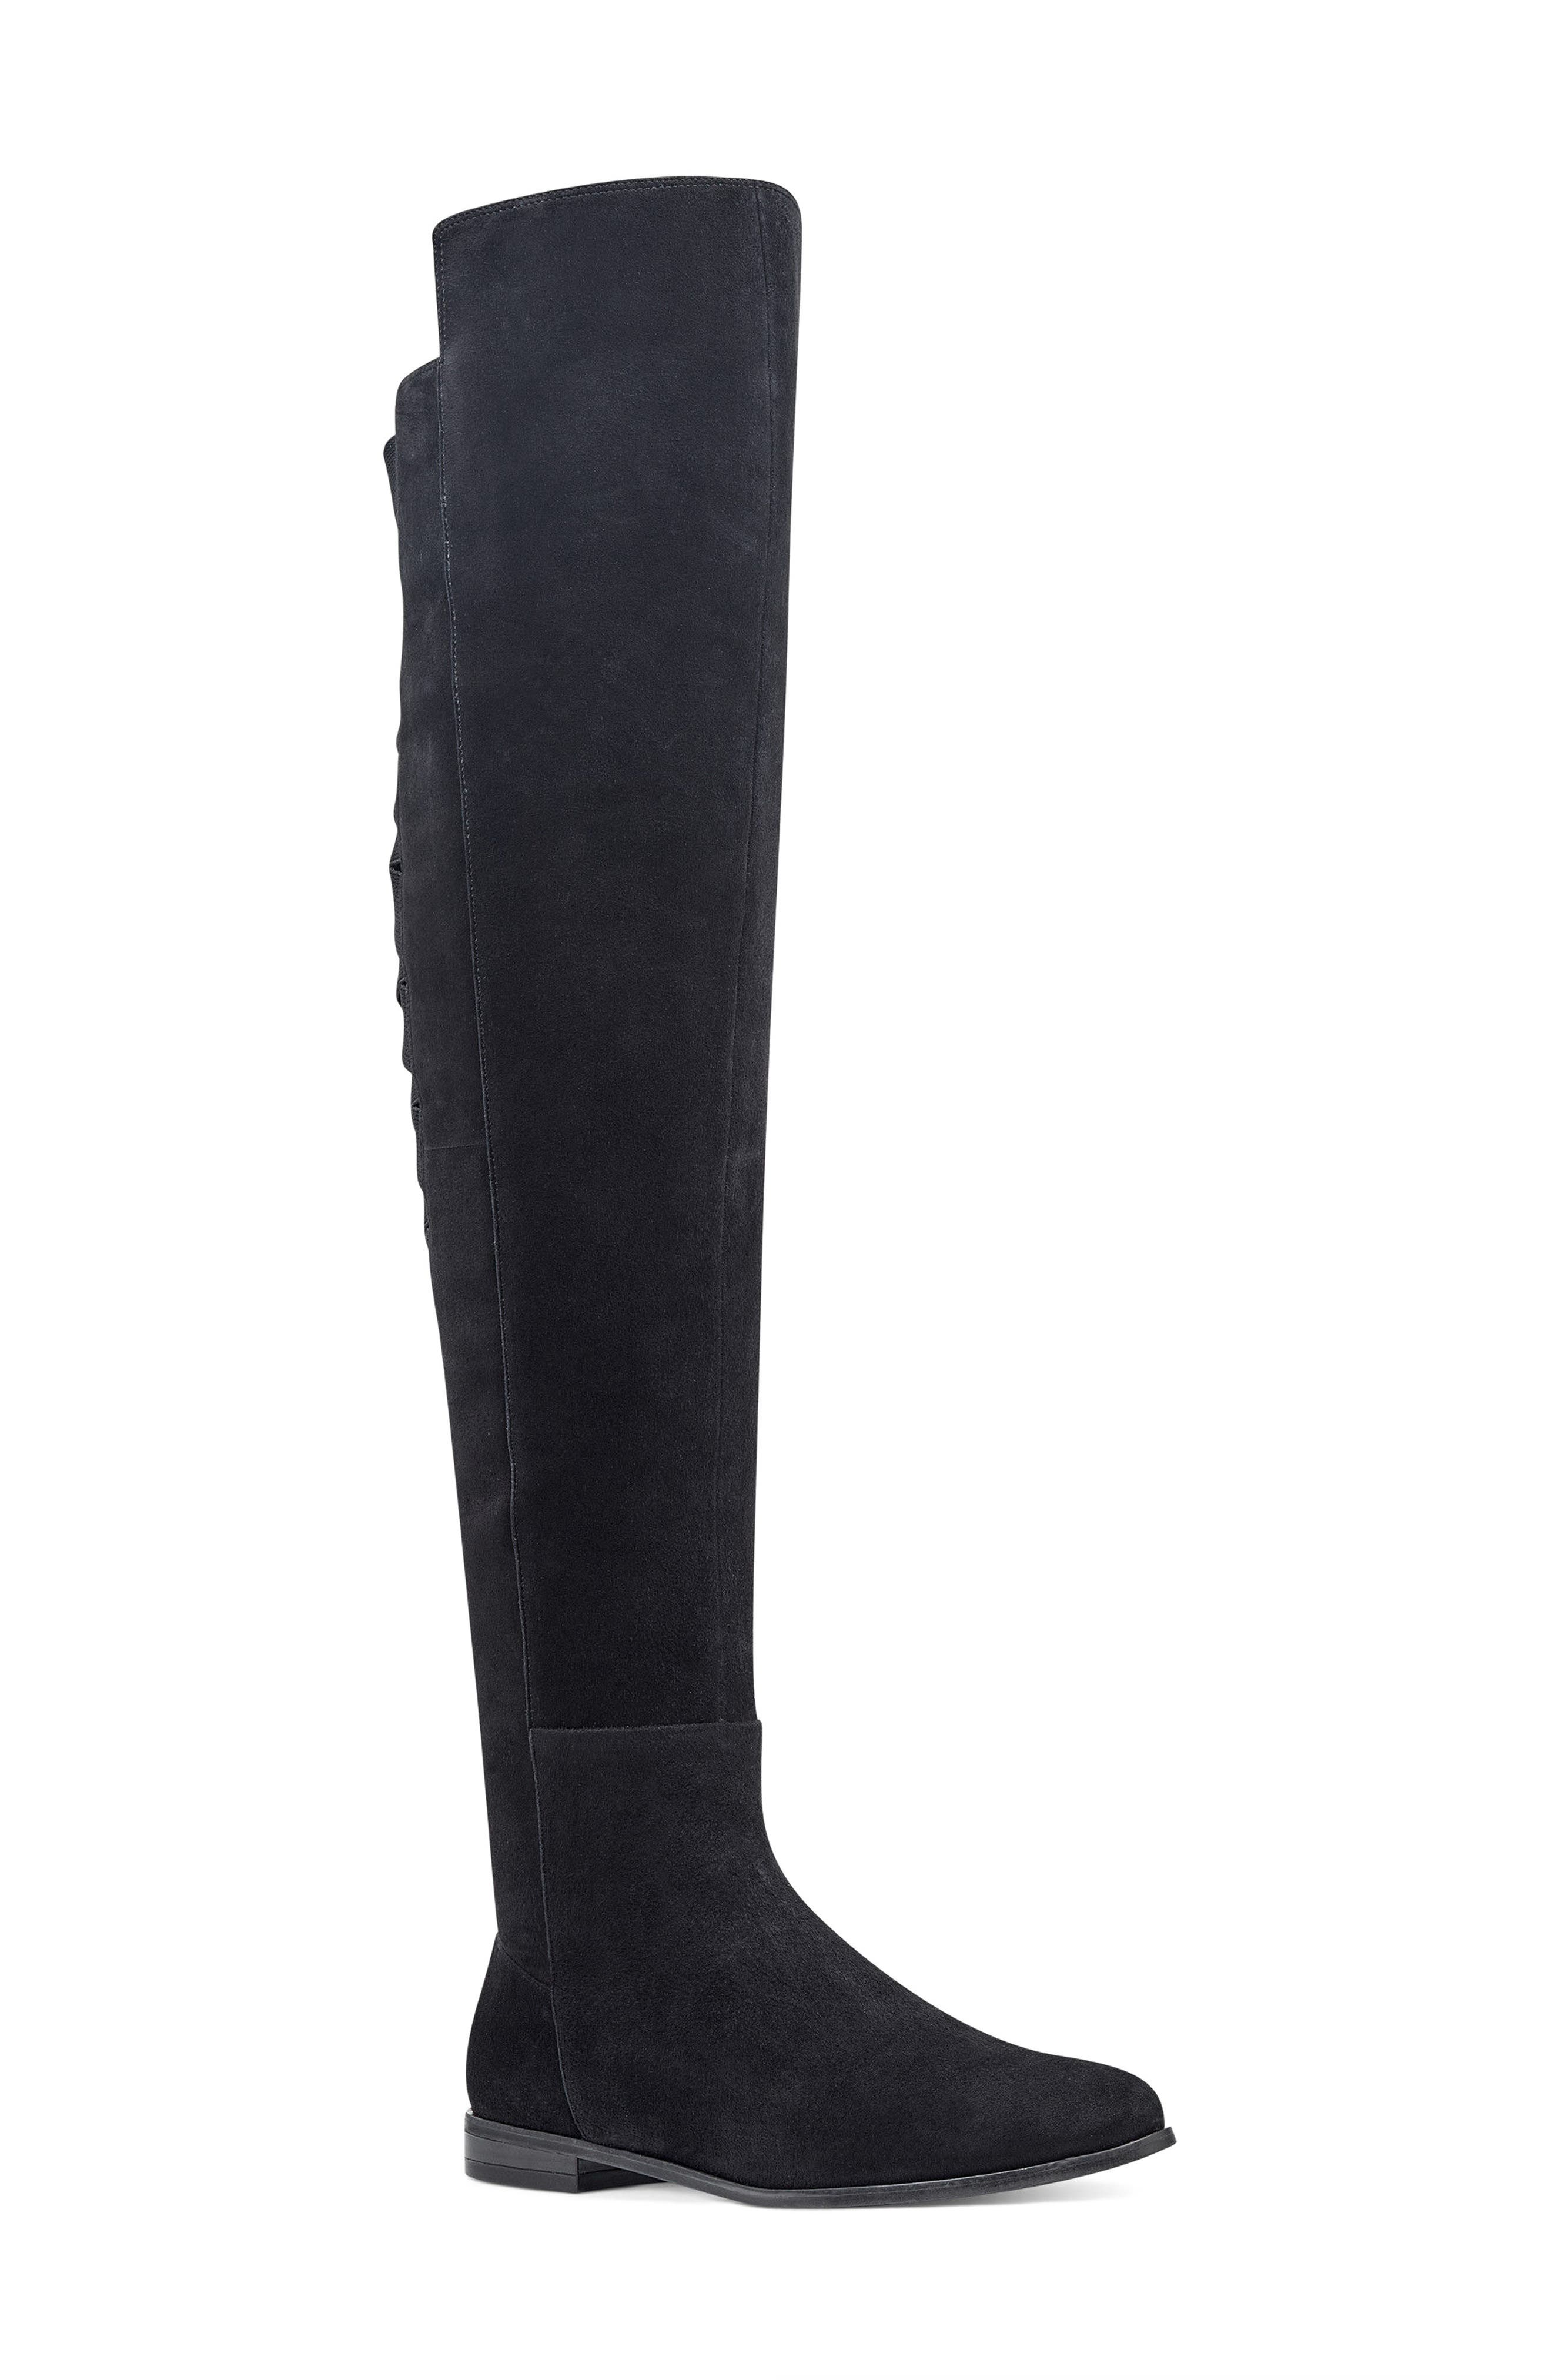 NINE WEST,                             Eltynn Over the Knee Boot,                             Main thumbnail 1, color,                             001